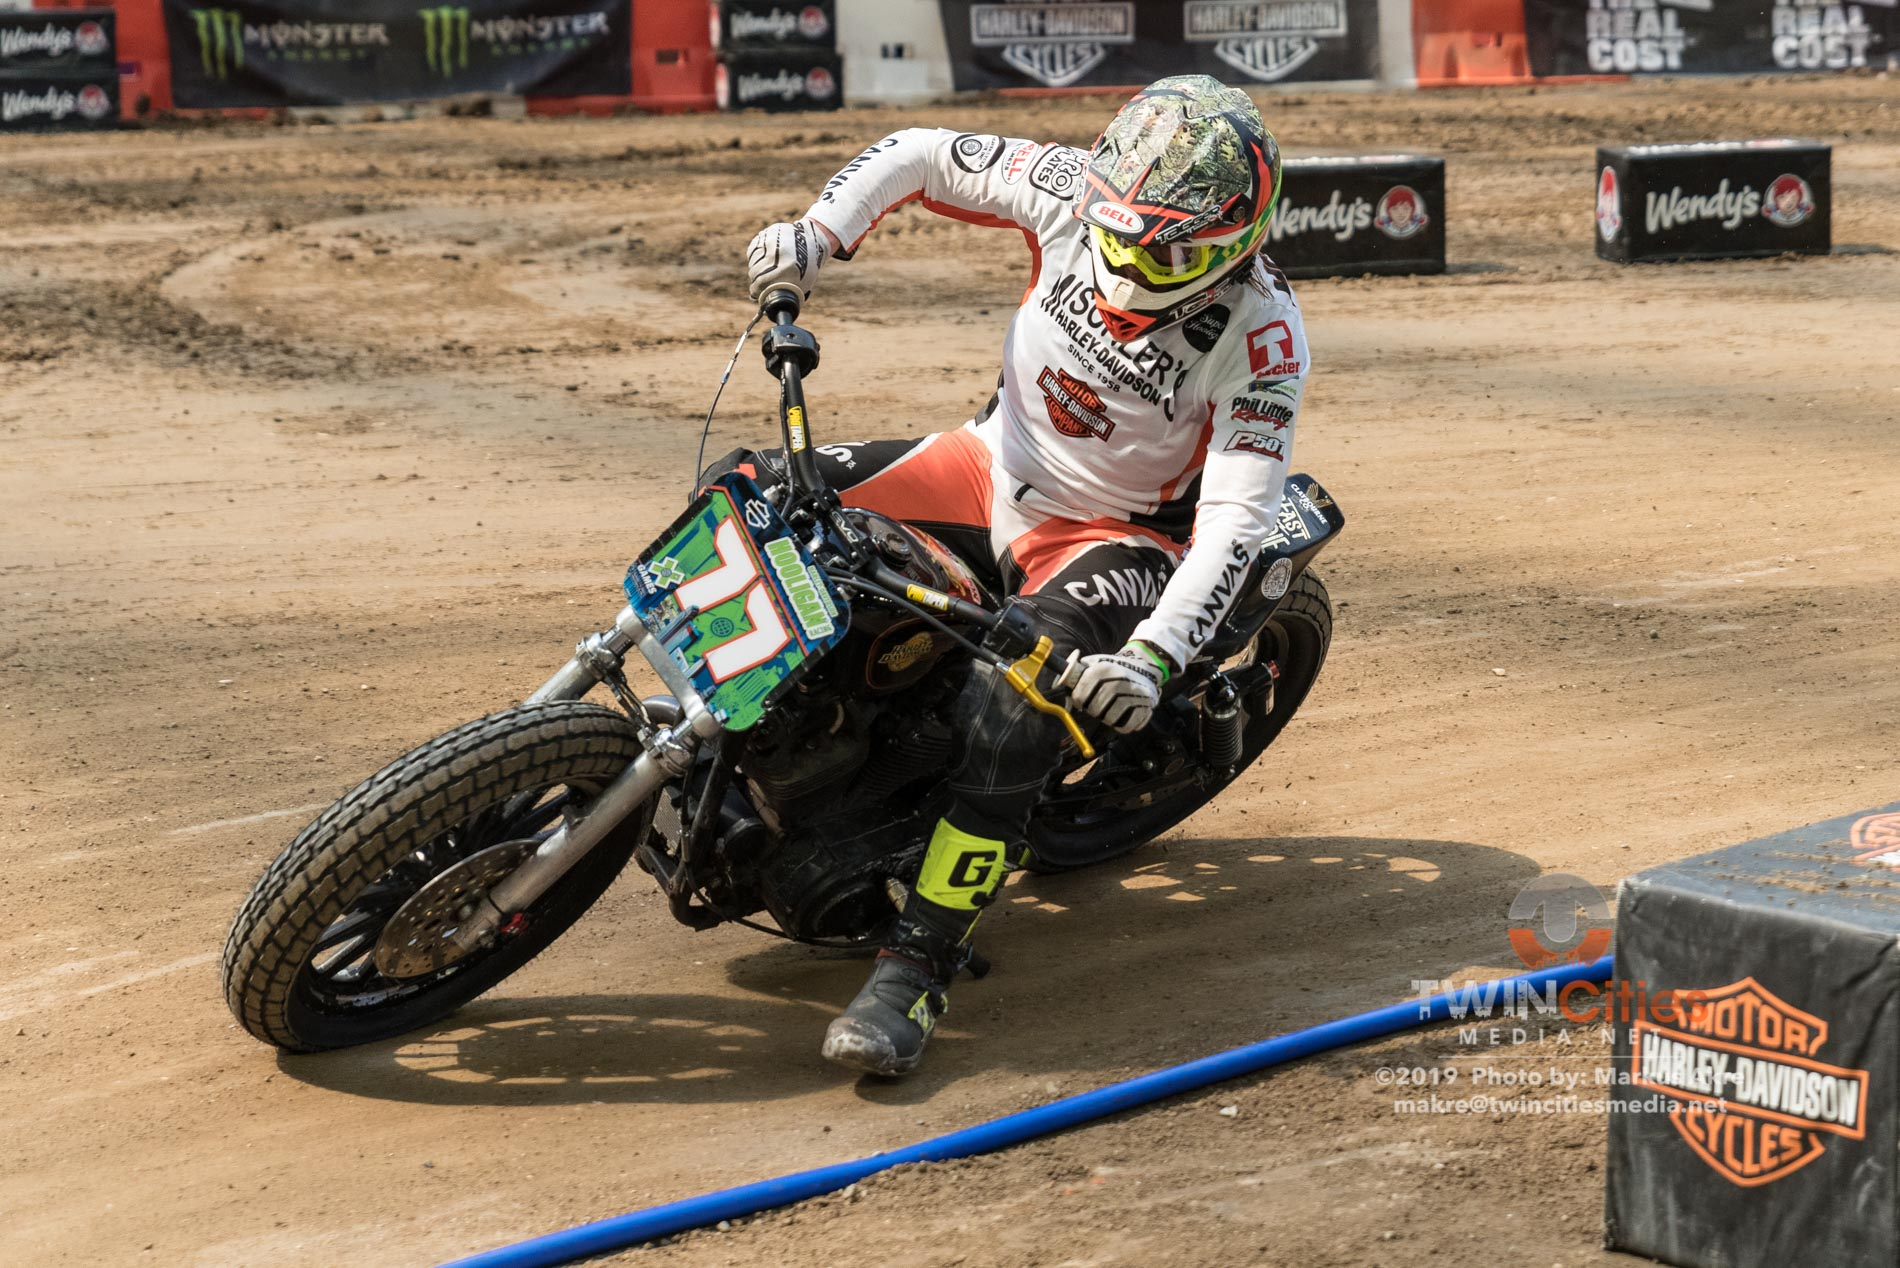 2019-X-Games-Day-4-Harley-Davidson-Hooligan-Racing-13